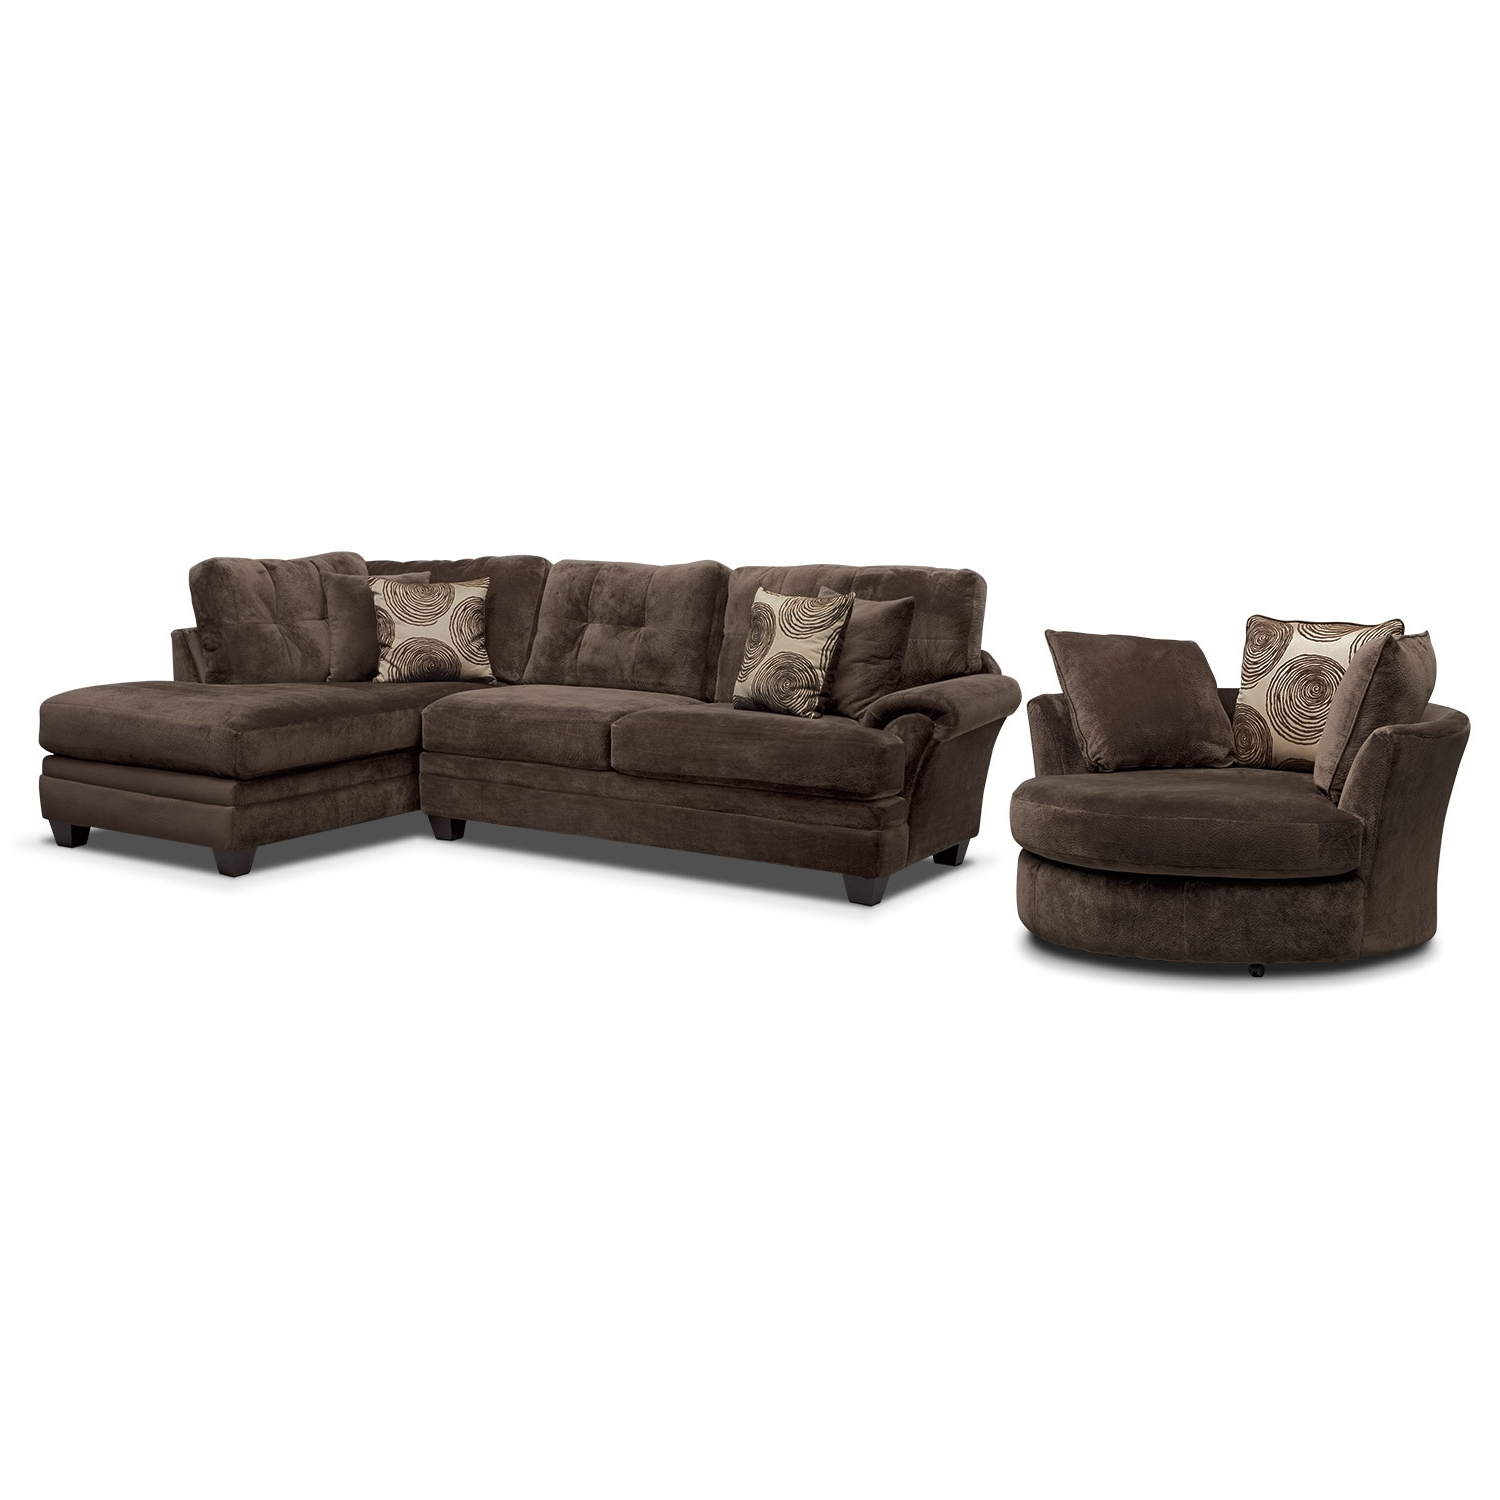 Cordelle 2 Piece Right Facing Chaise Sectional And Swivel Chair With Regard To Most Popular Sofas With Swivel Chair (View 2 of 15)